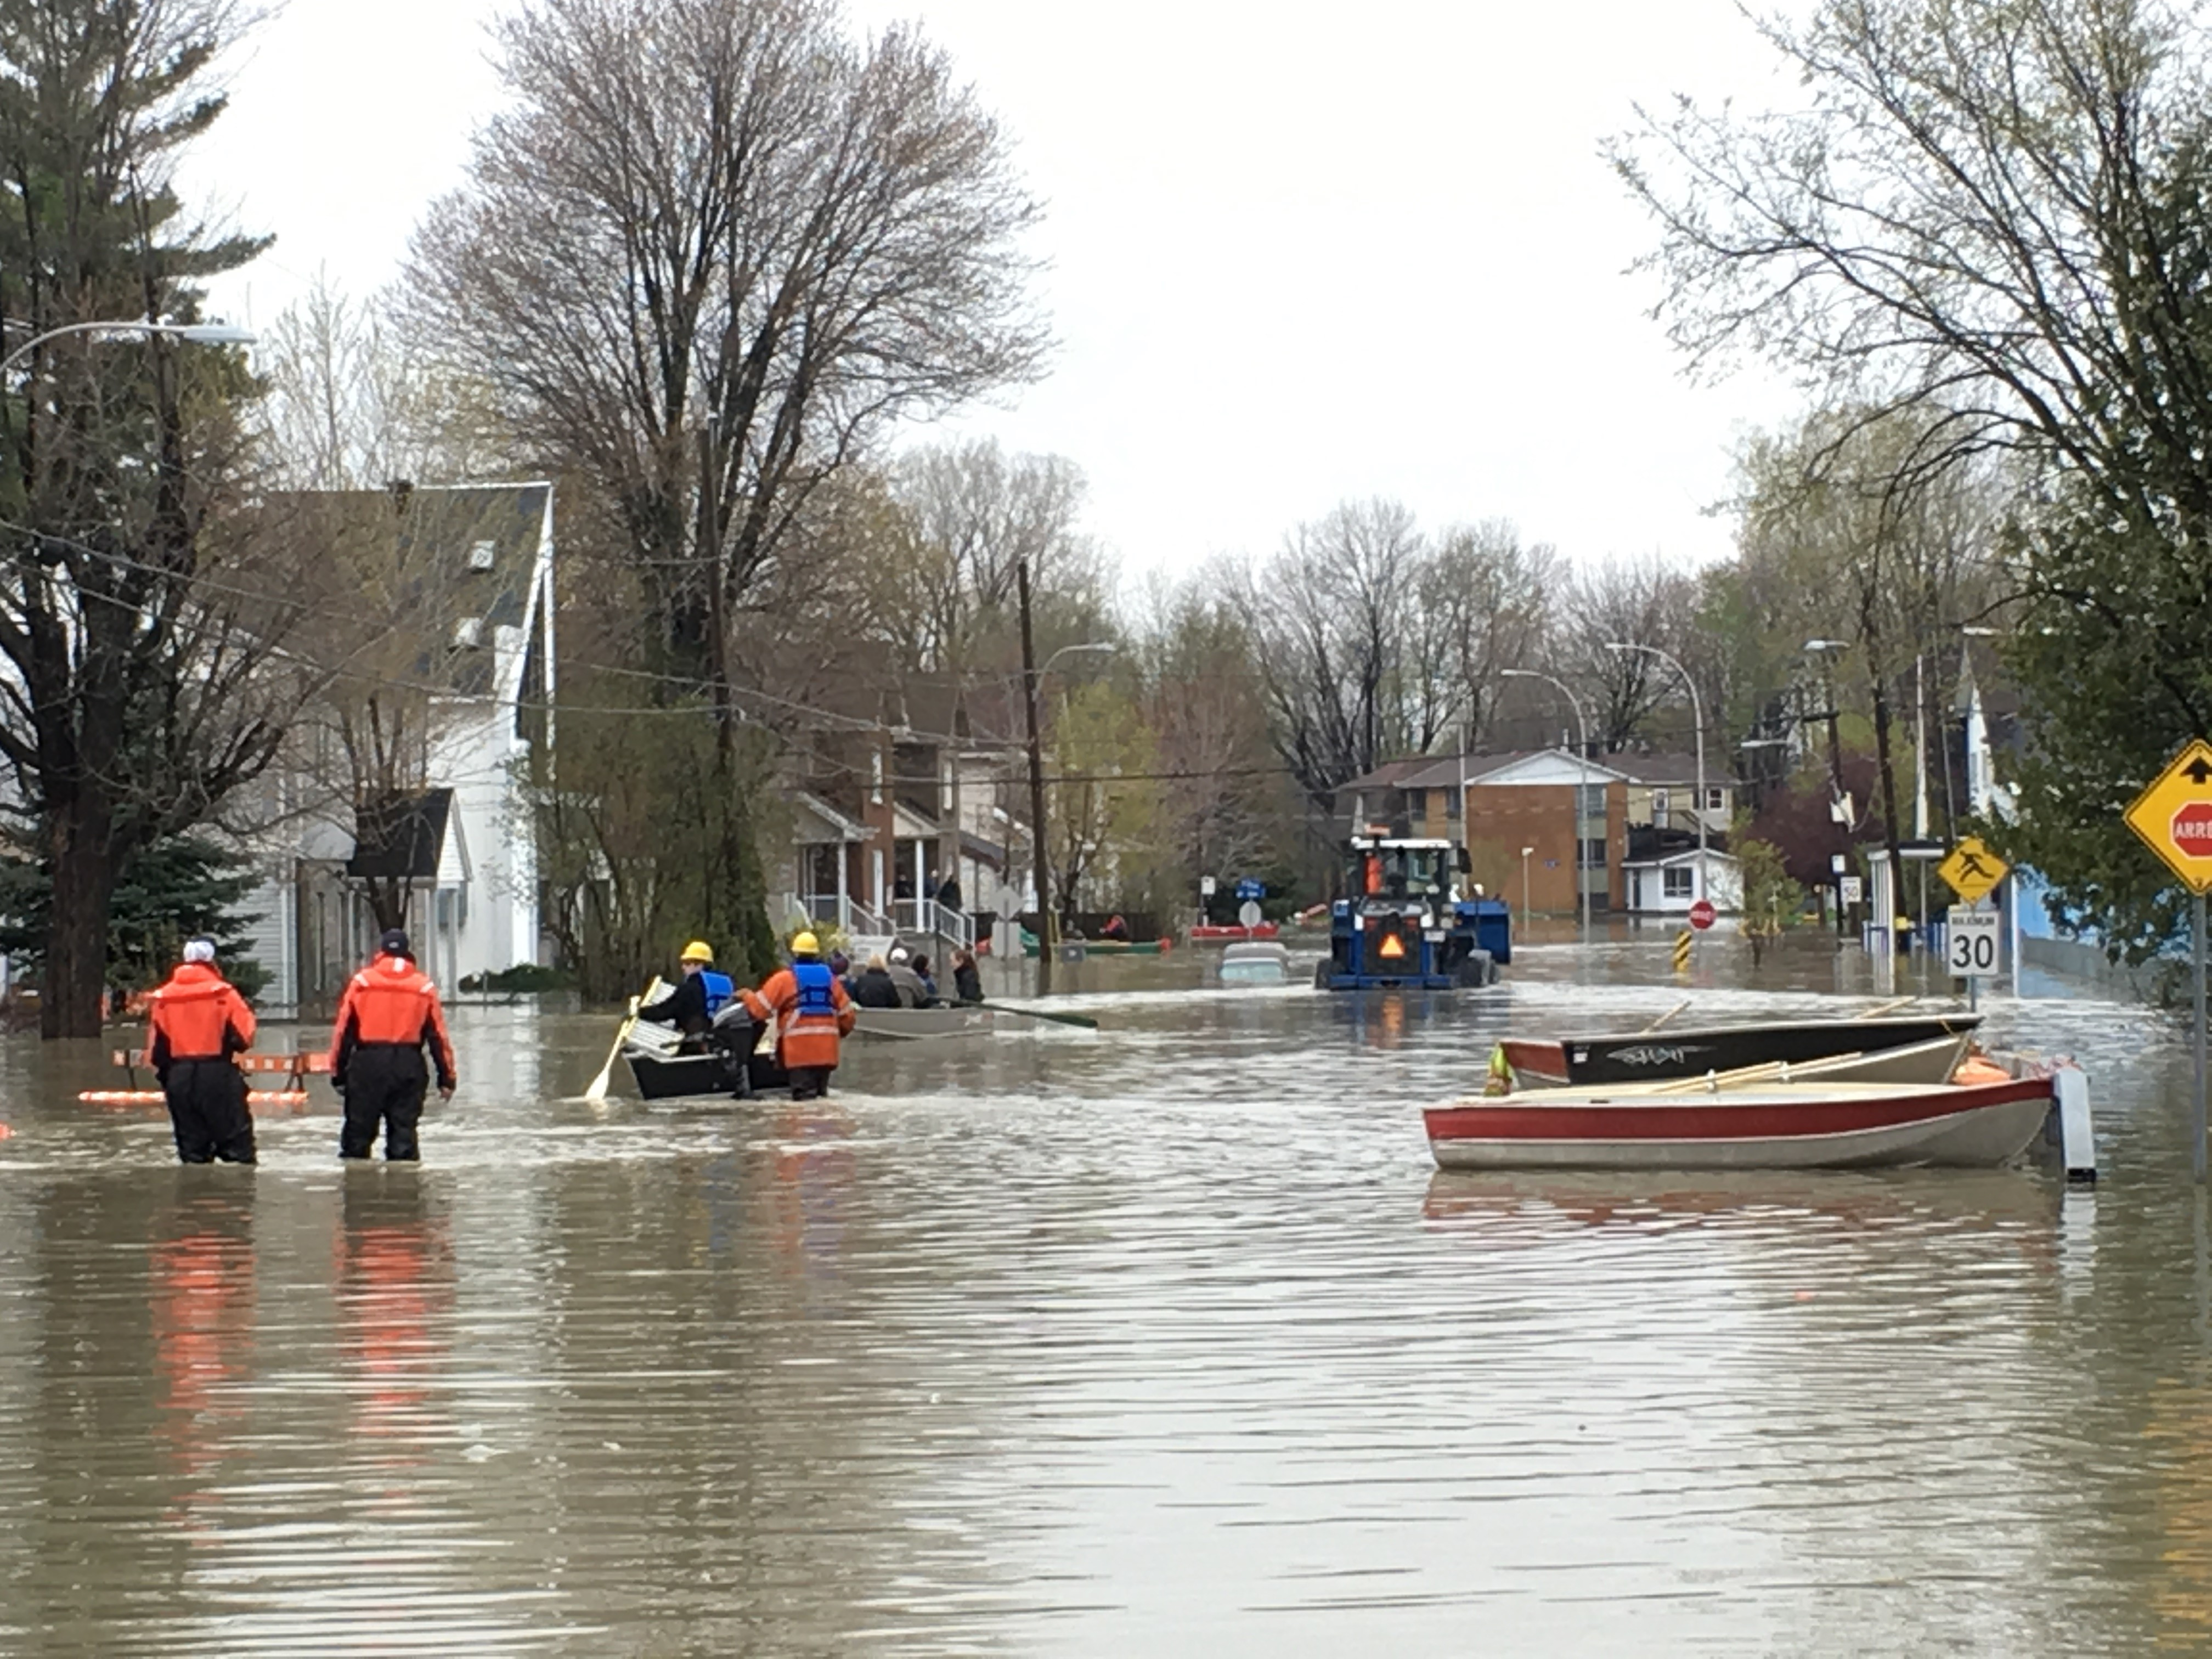 Boats and front loaders are used to rescue people from ...